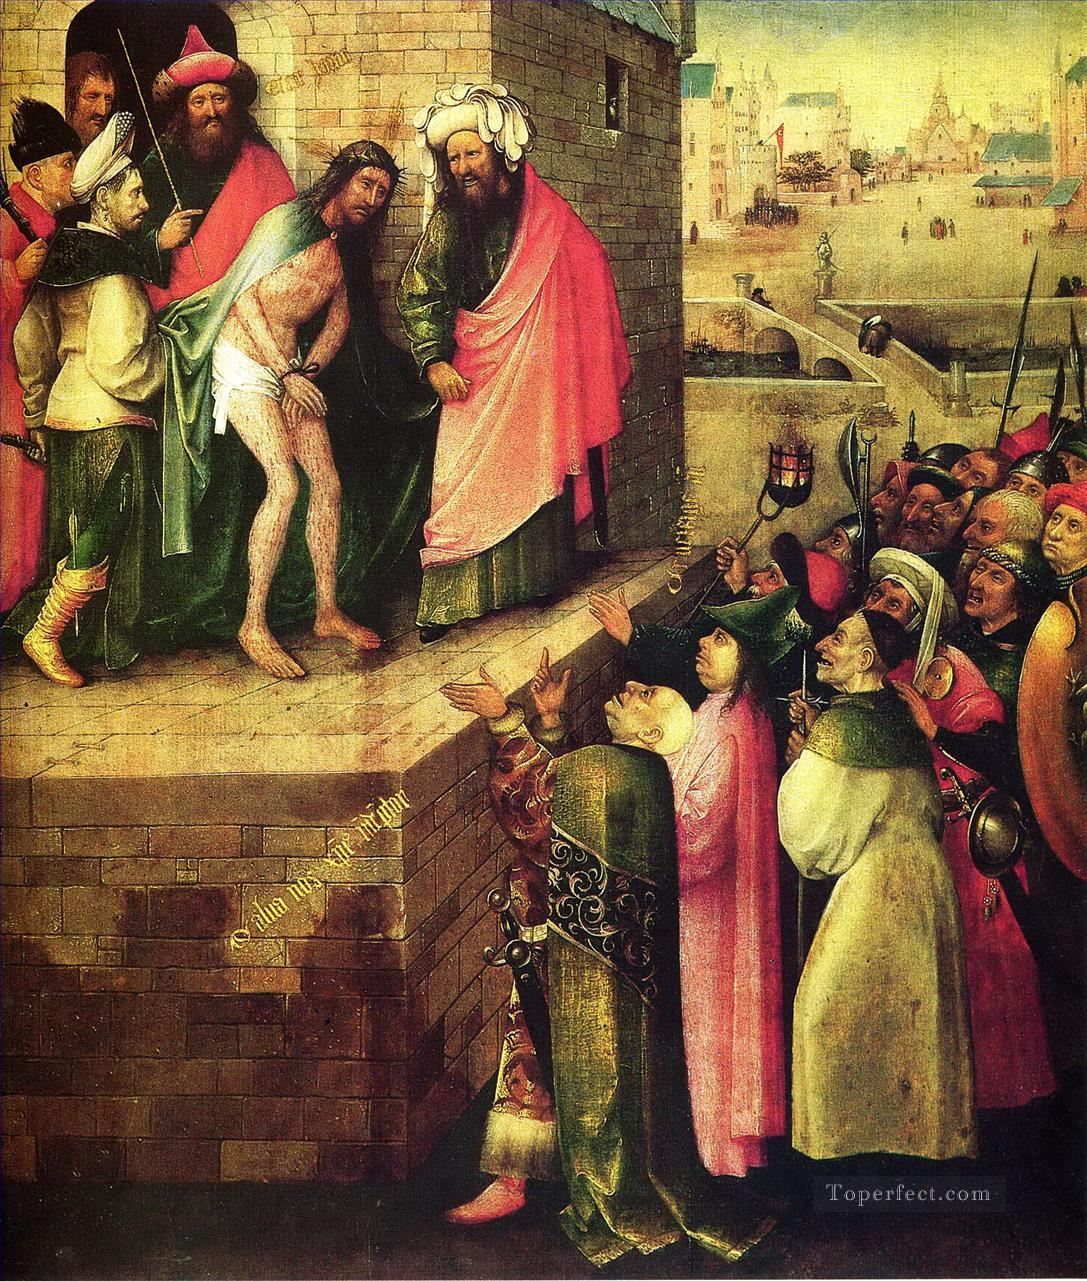 this is a human ecce homo Hieronymus Bosch religious Christian Oil Paintings